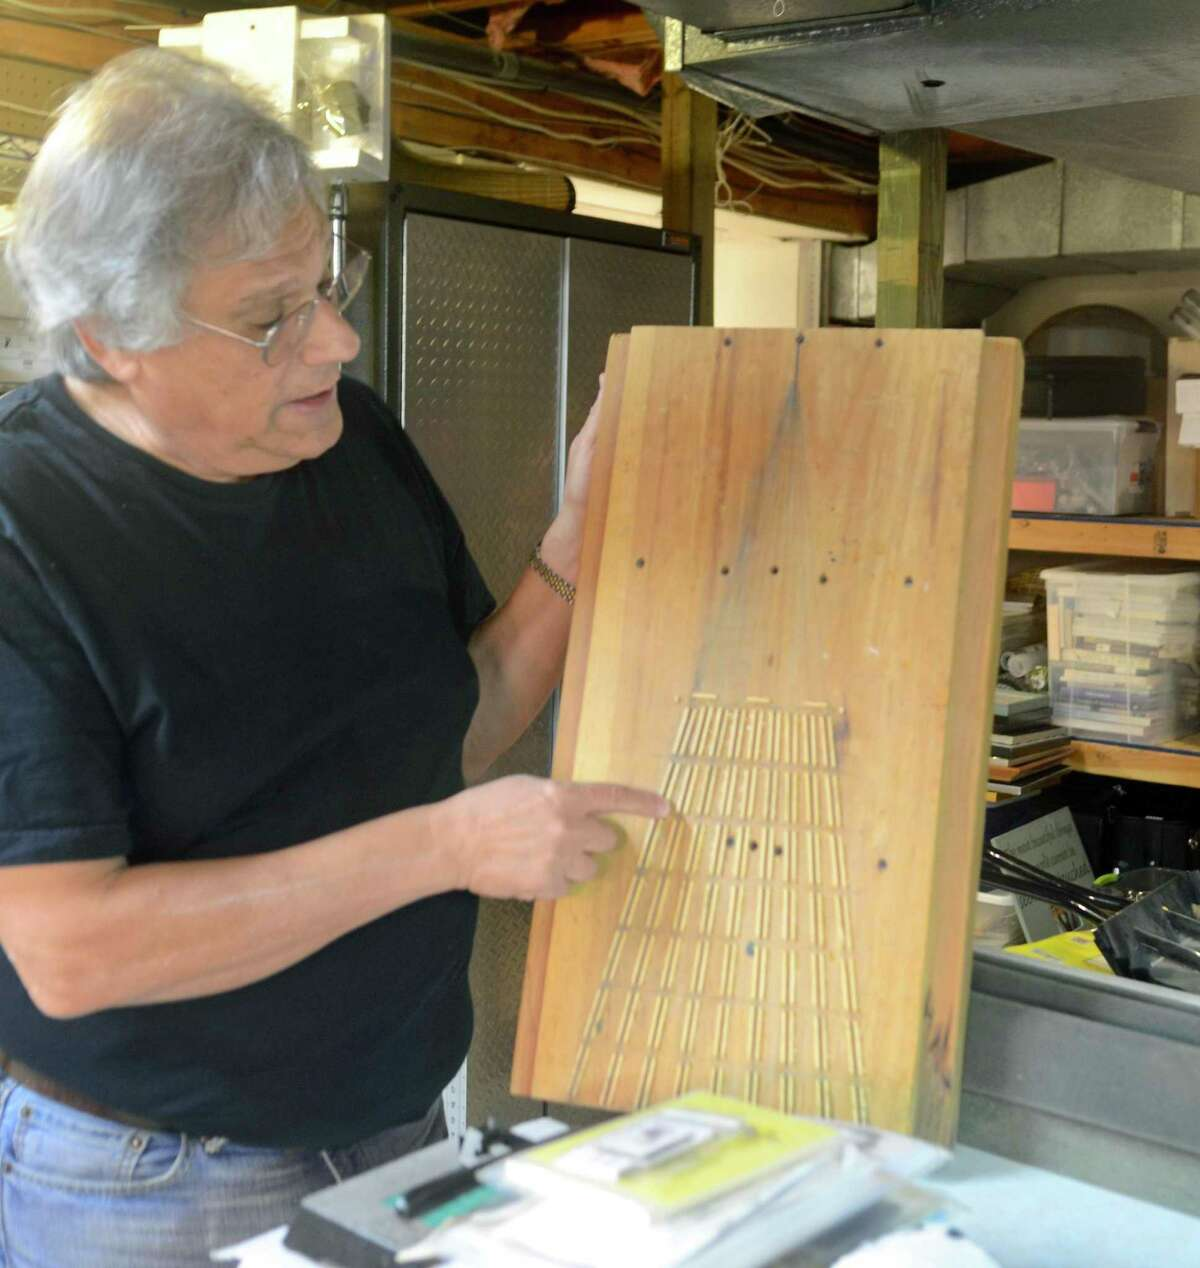 Friedler has to make the pieces or templates so he can build some of the tiny elements that go into building trestles and bridges.